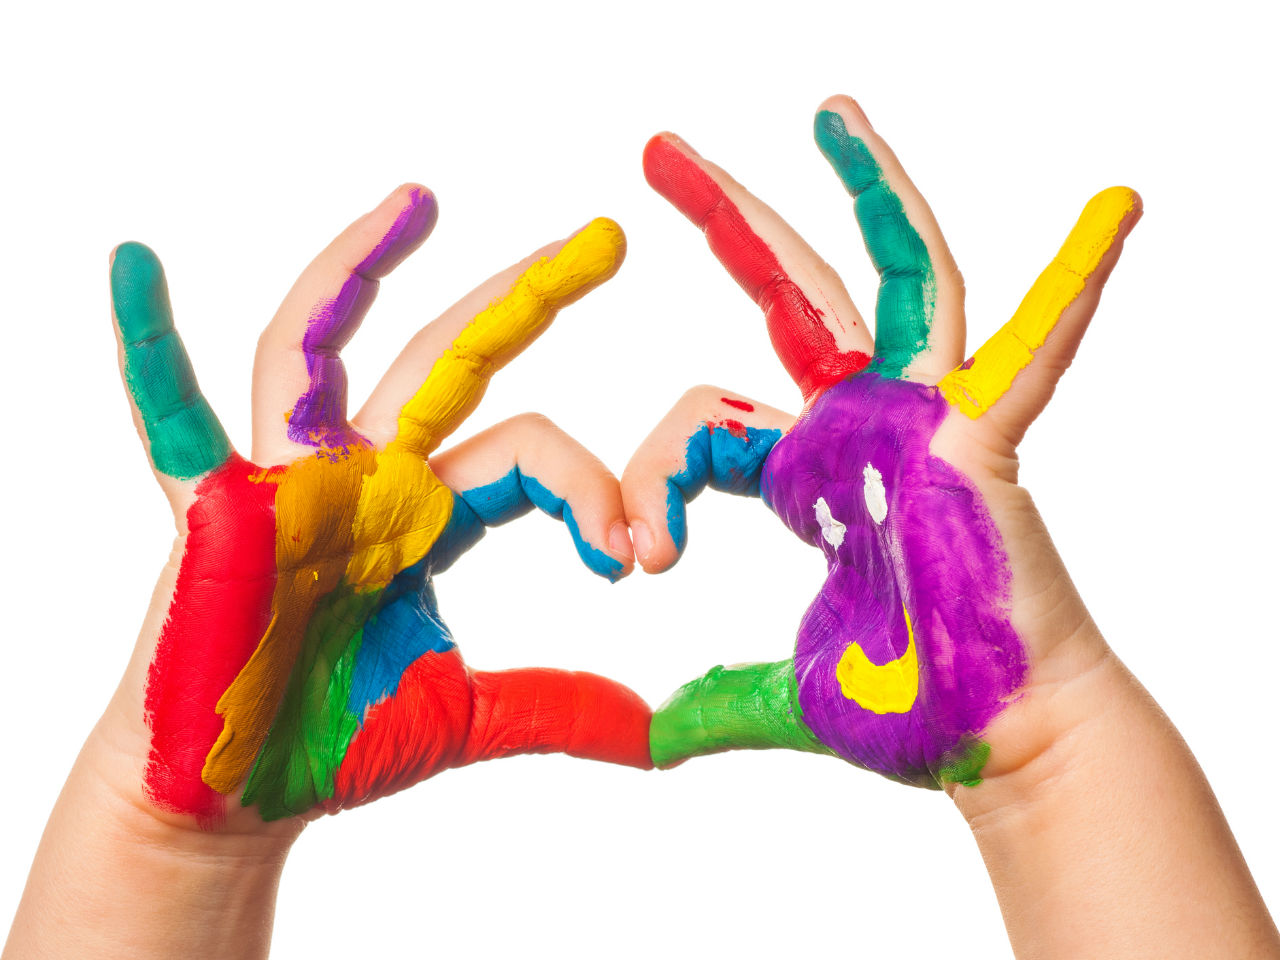 Kid making a heart shape with his fingers, with colourful painted hands.